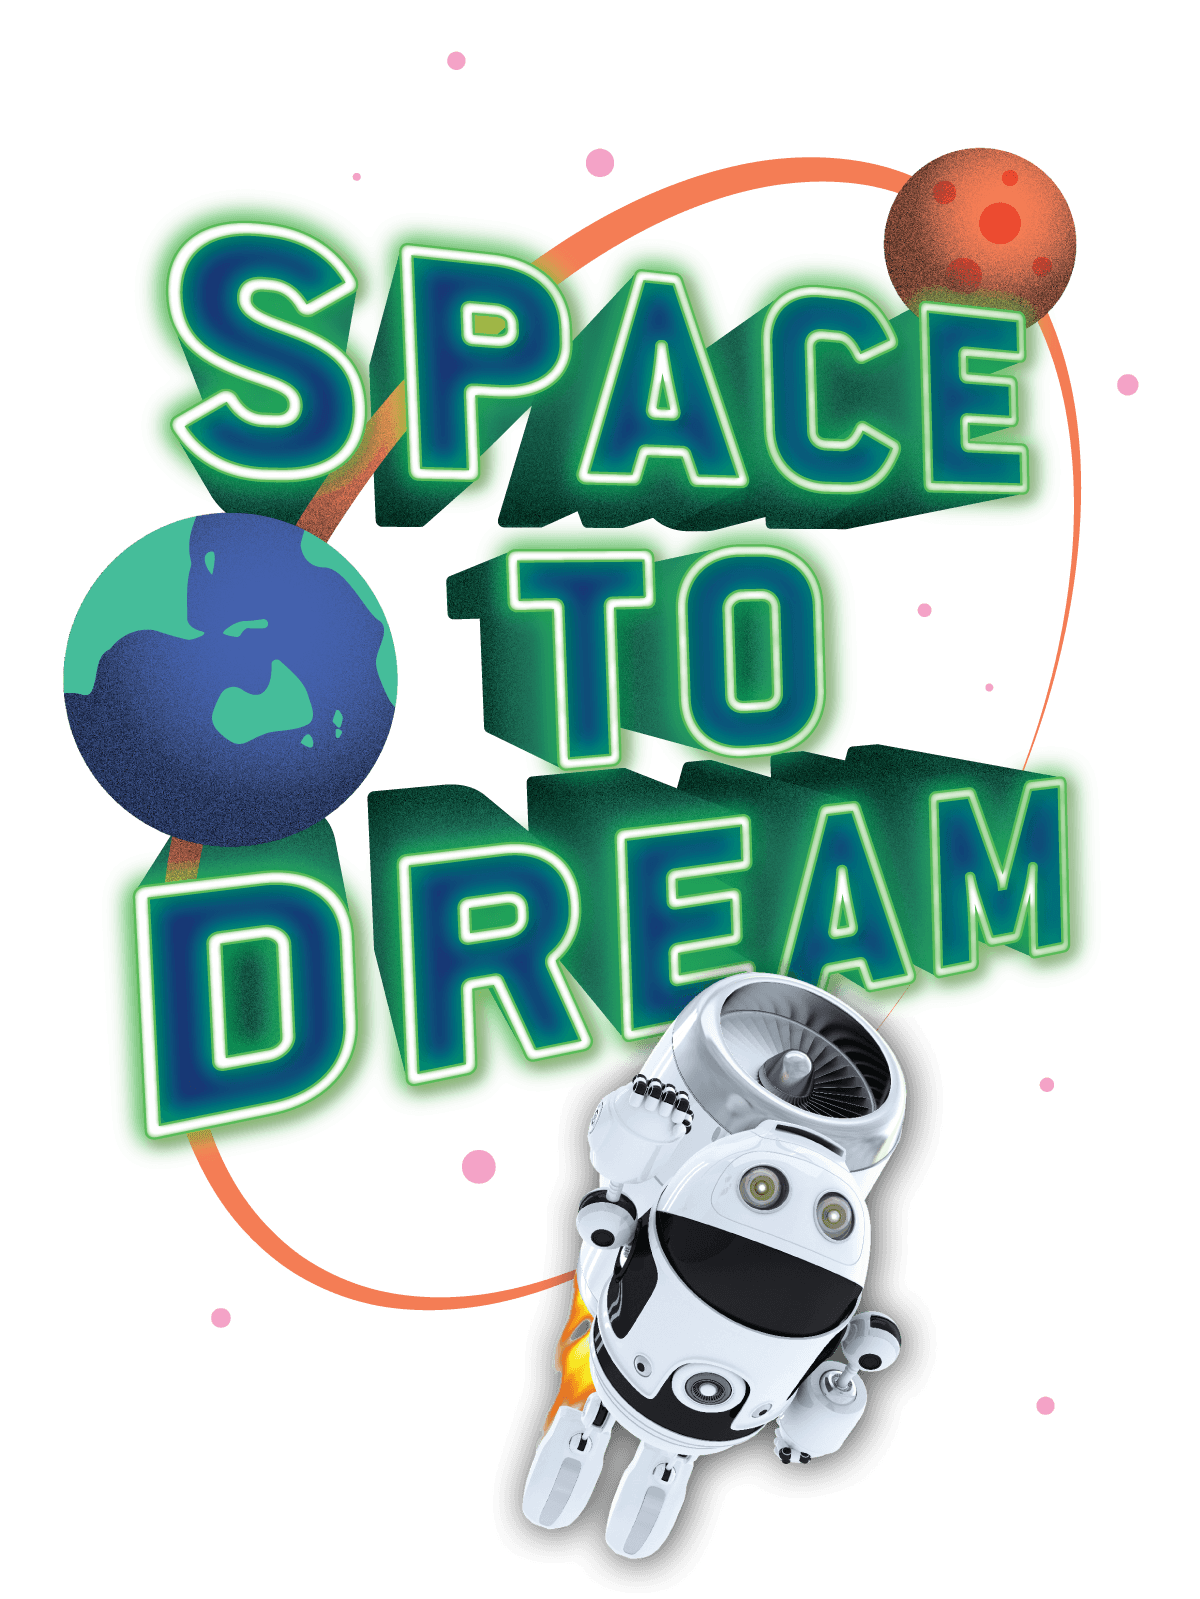 Space to Dream - Design Thinking image